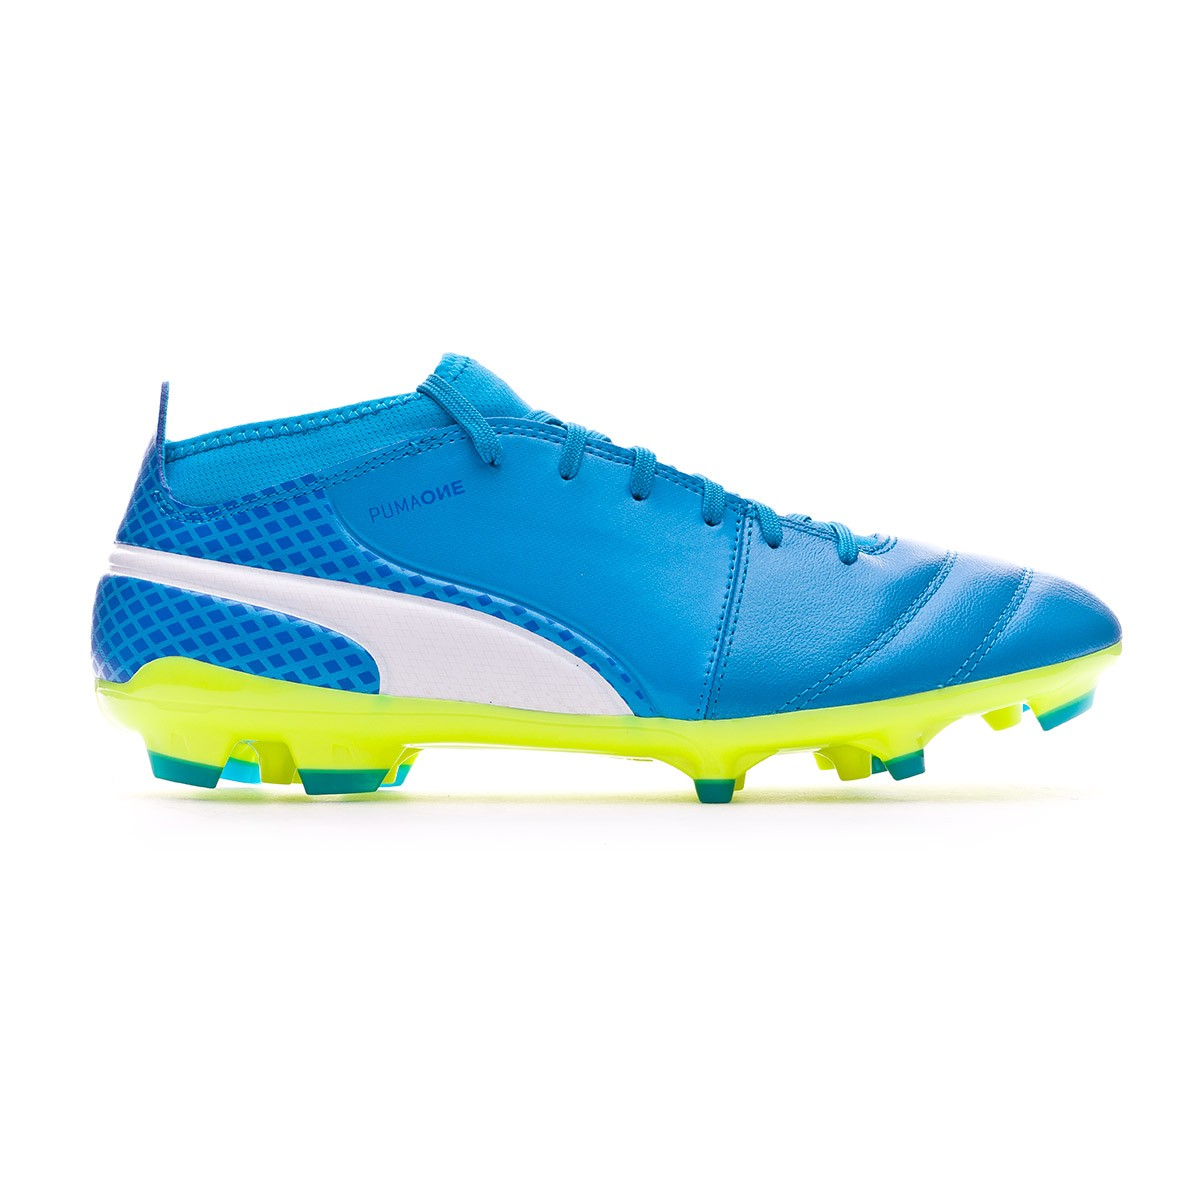 8bd4aba1d3f Boot Puma One 17.3 AG Atomic blue-Puma white-Safety yellow - Leaked soccer